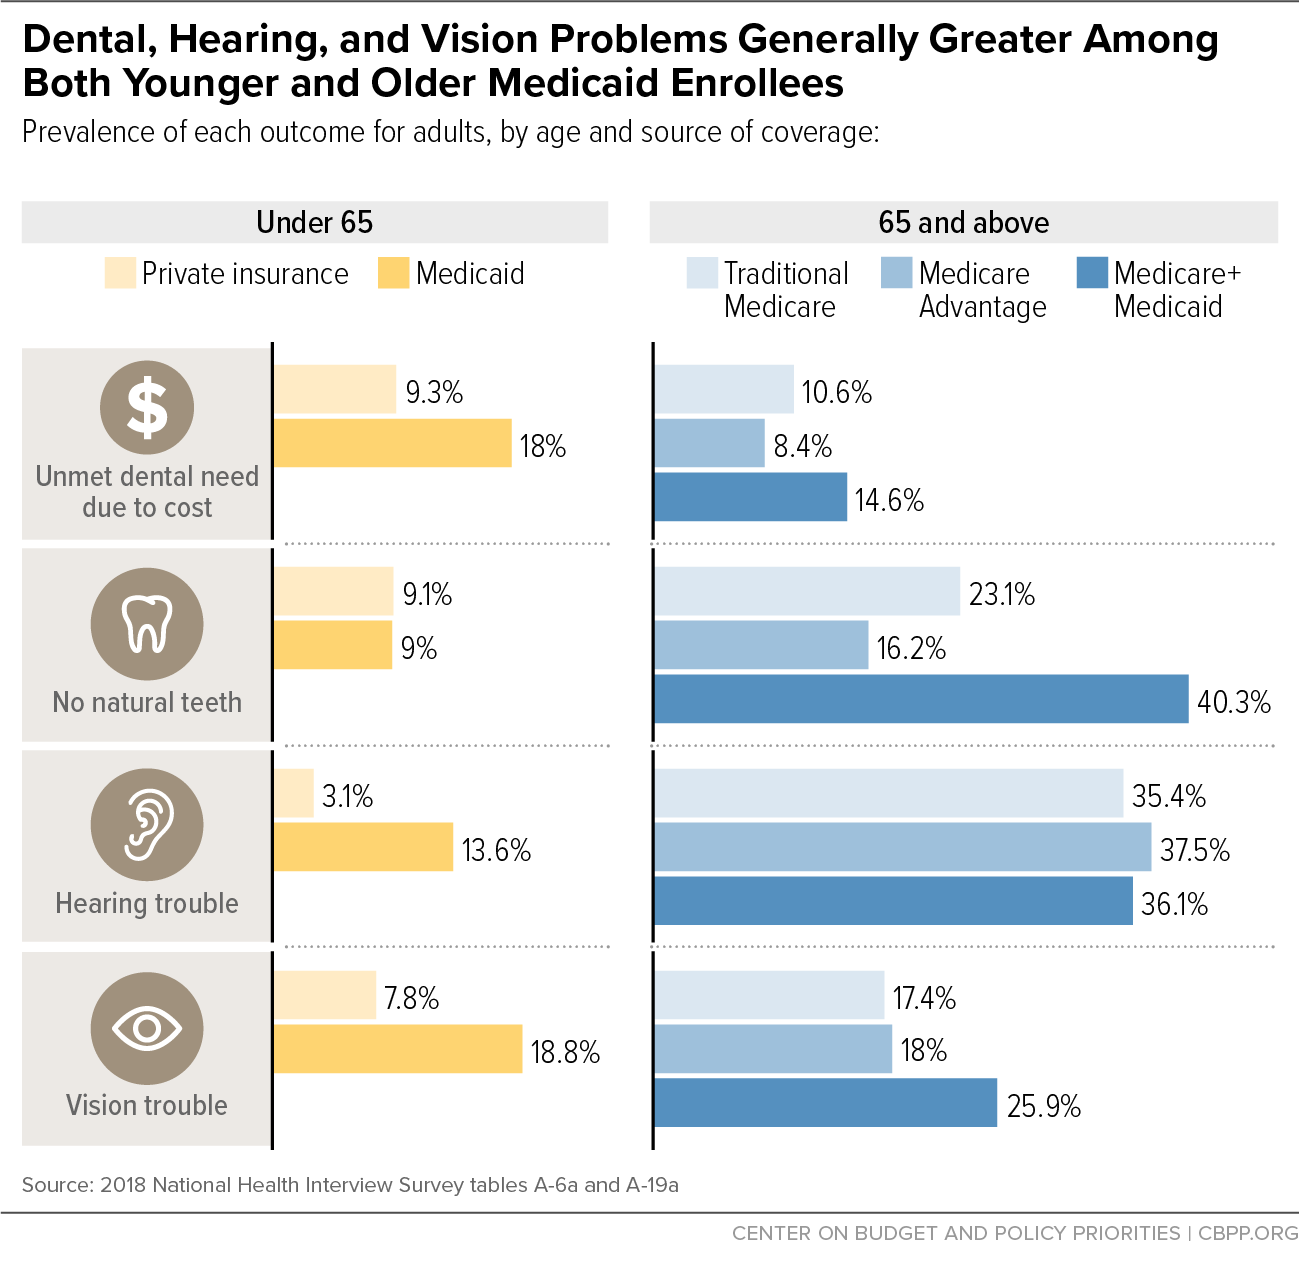 Dental, Hearing, and Vision Problems Generally Greater Among Both Younger and Older Medicaid Enrollees